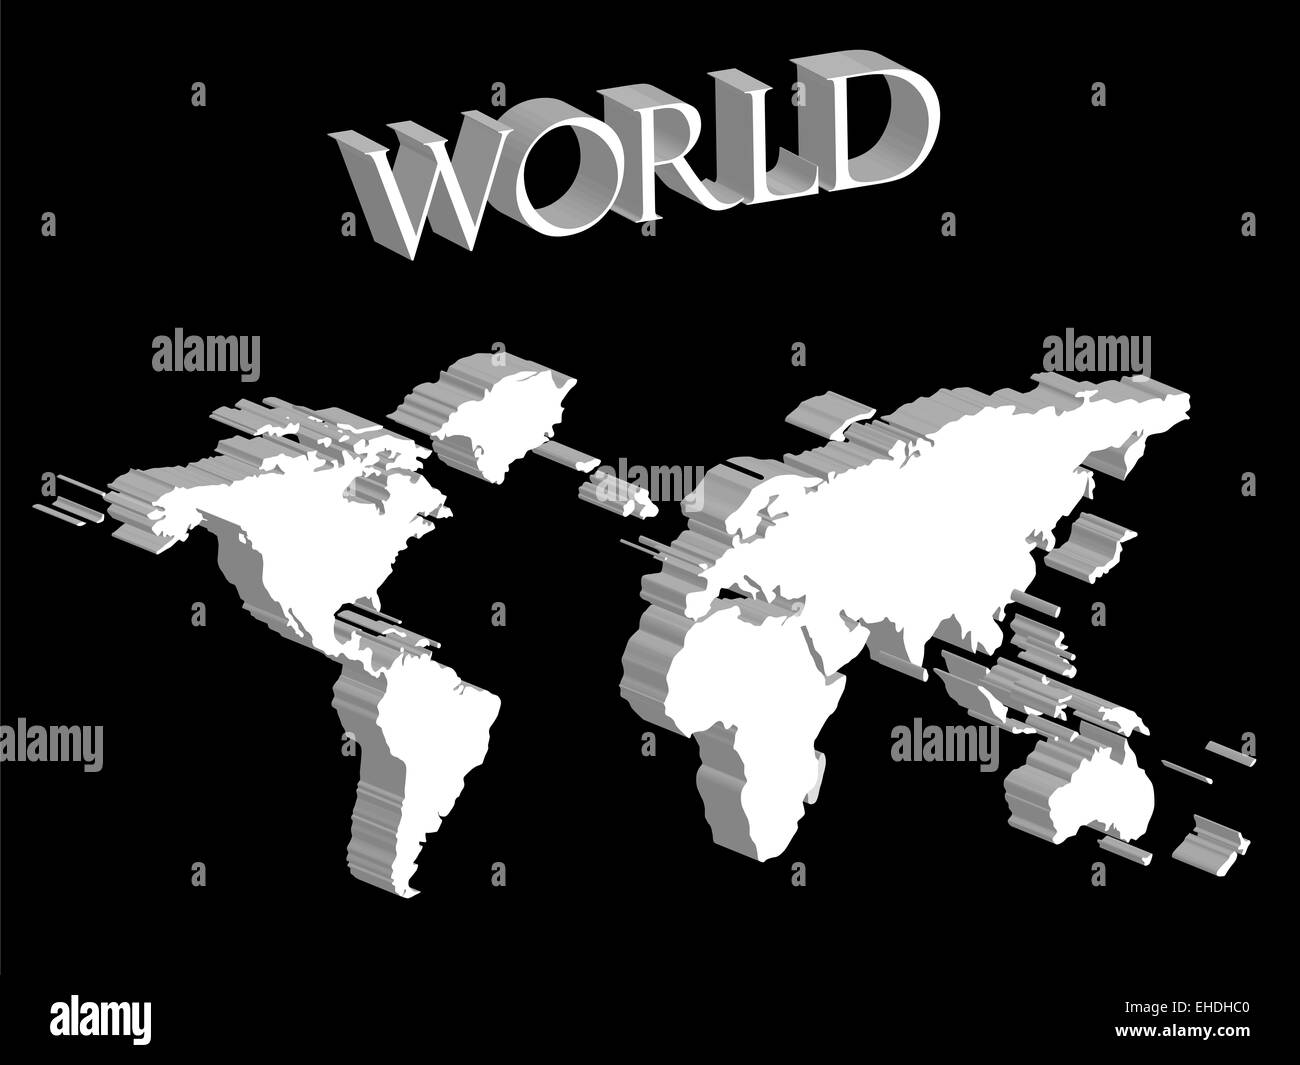 World map black and white countries stock photos world map black white world map expanded on black background stock image gumiabroncs Image collections